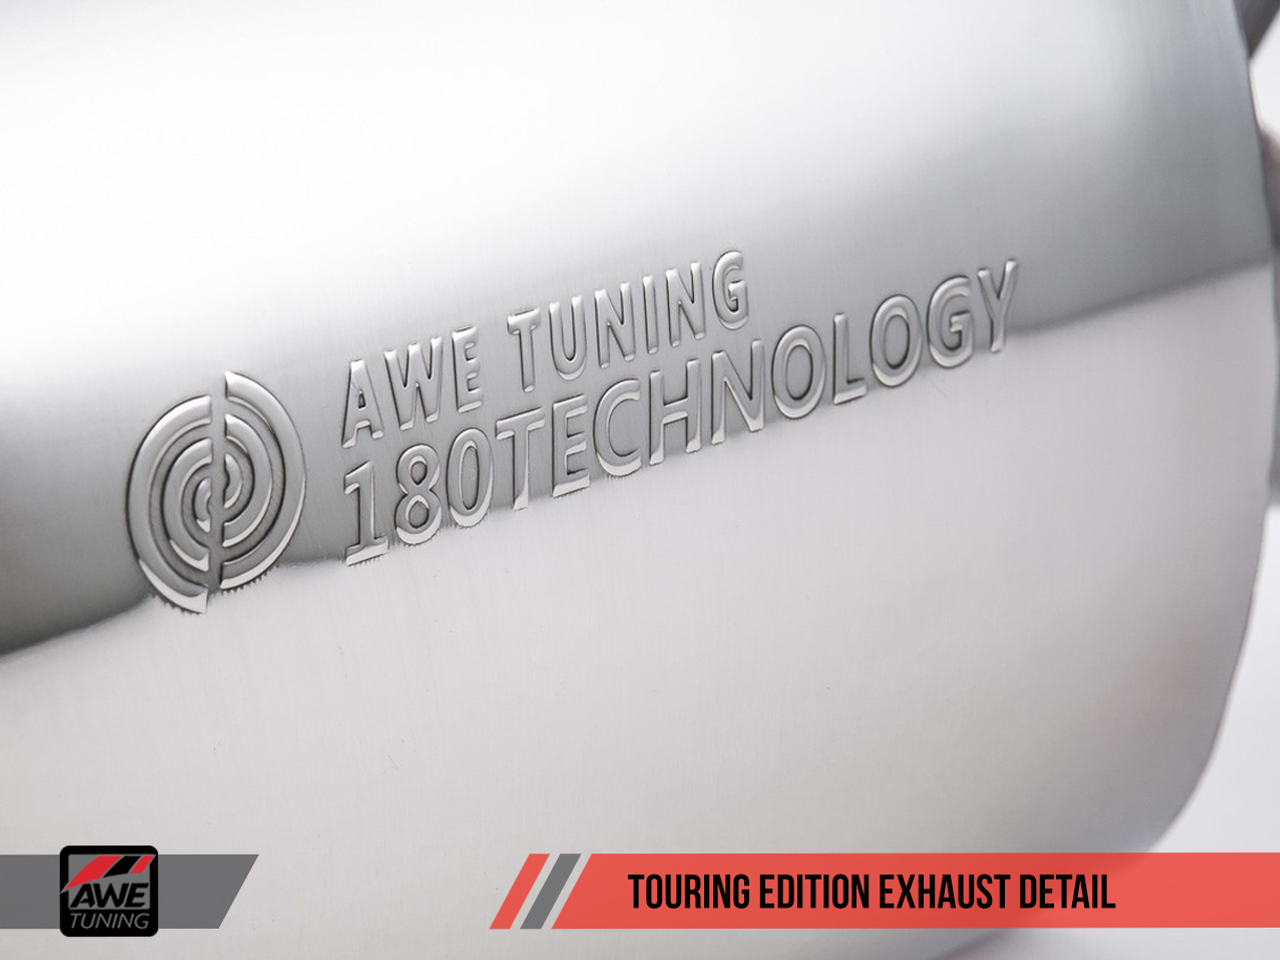 AWE Tuning - 180 Technology